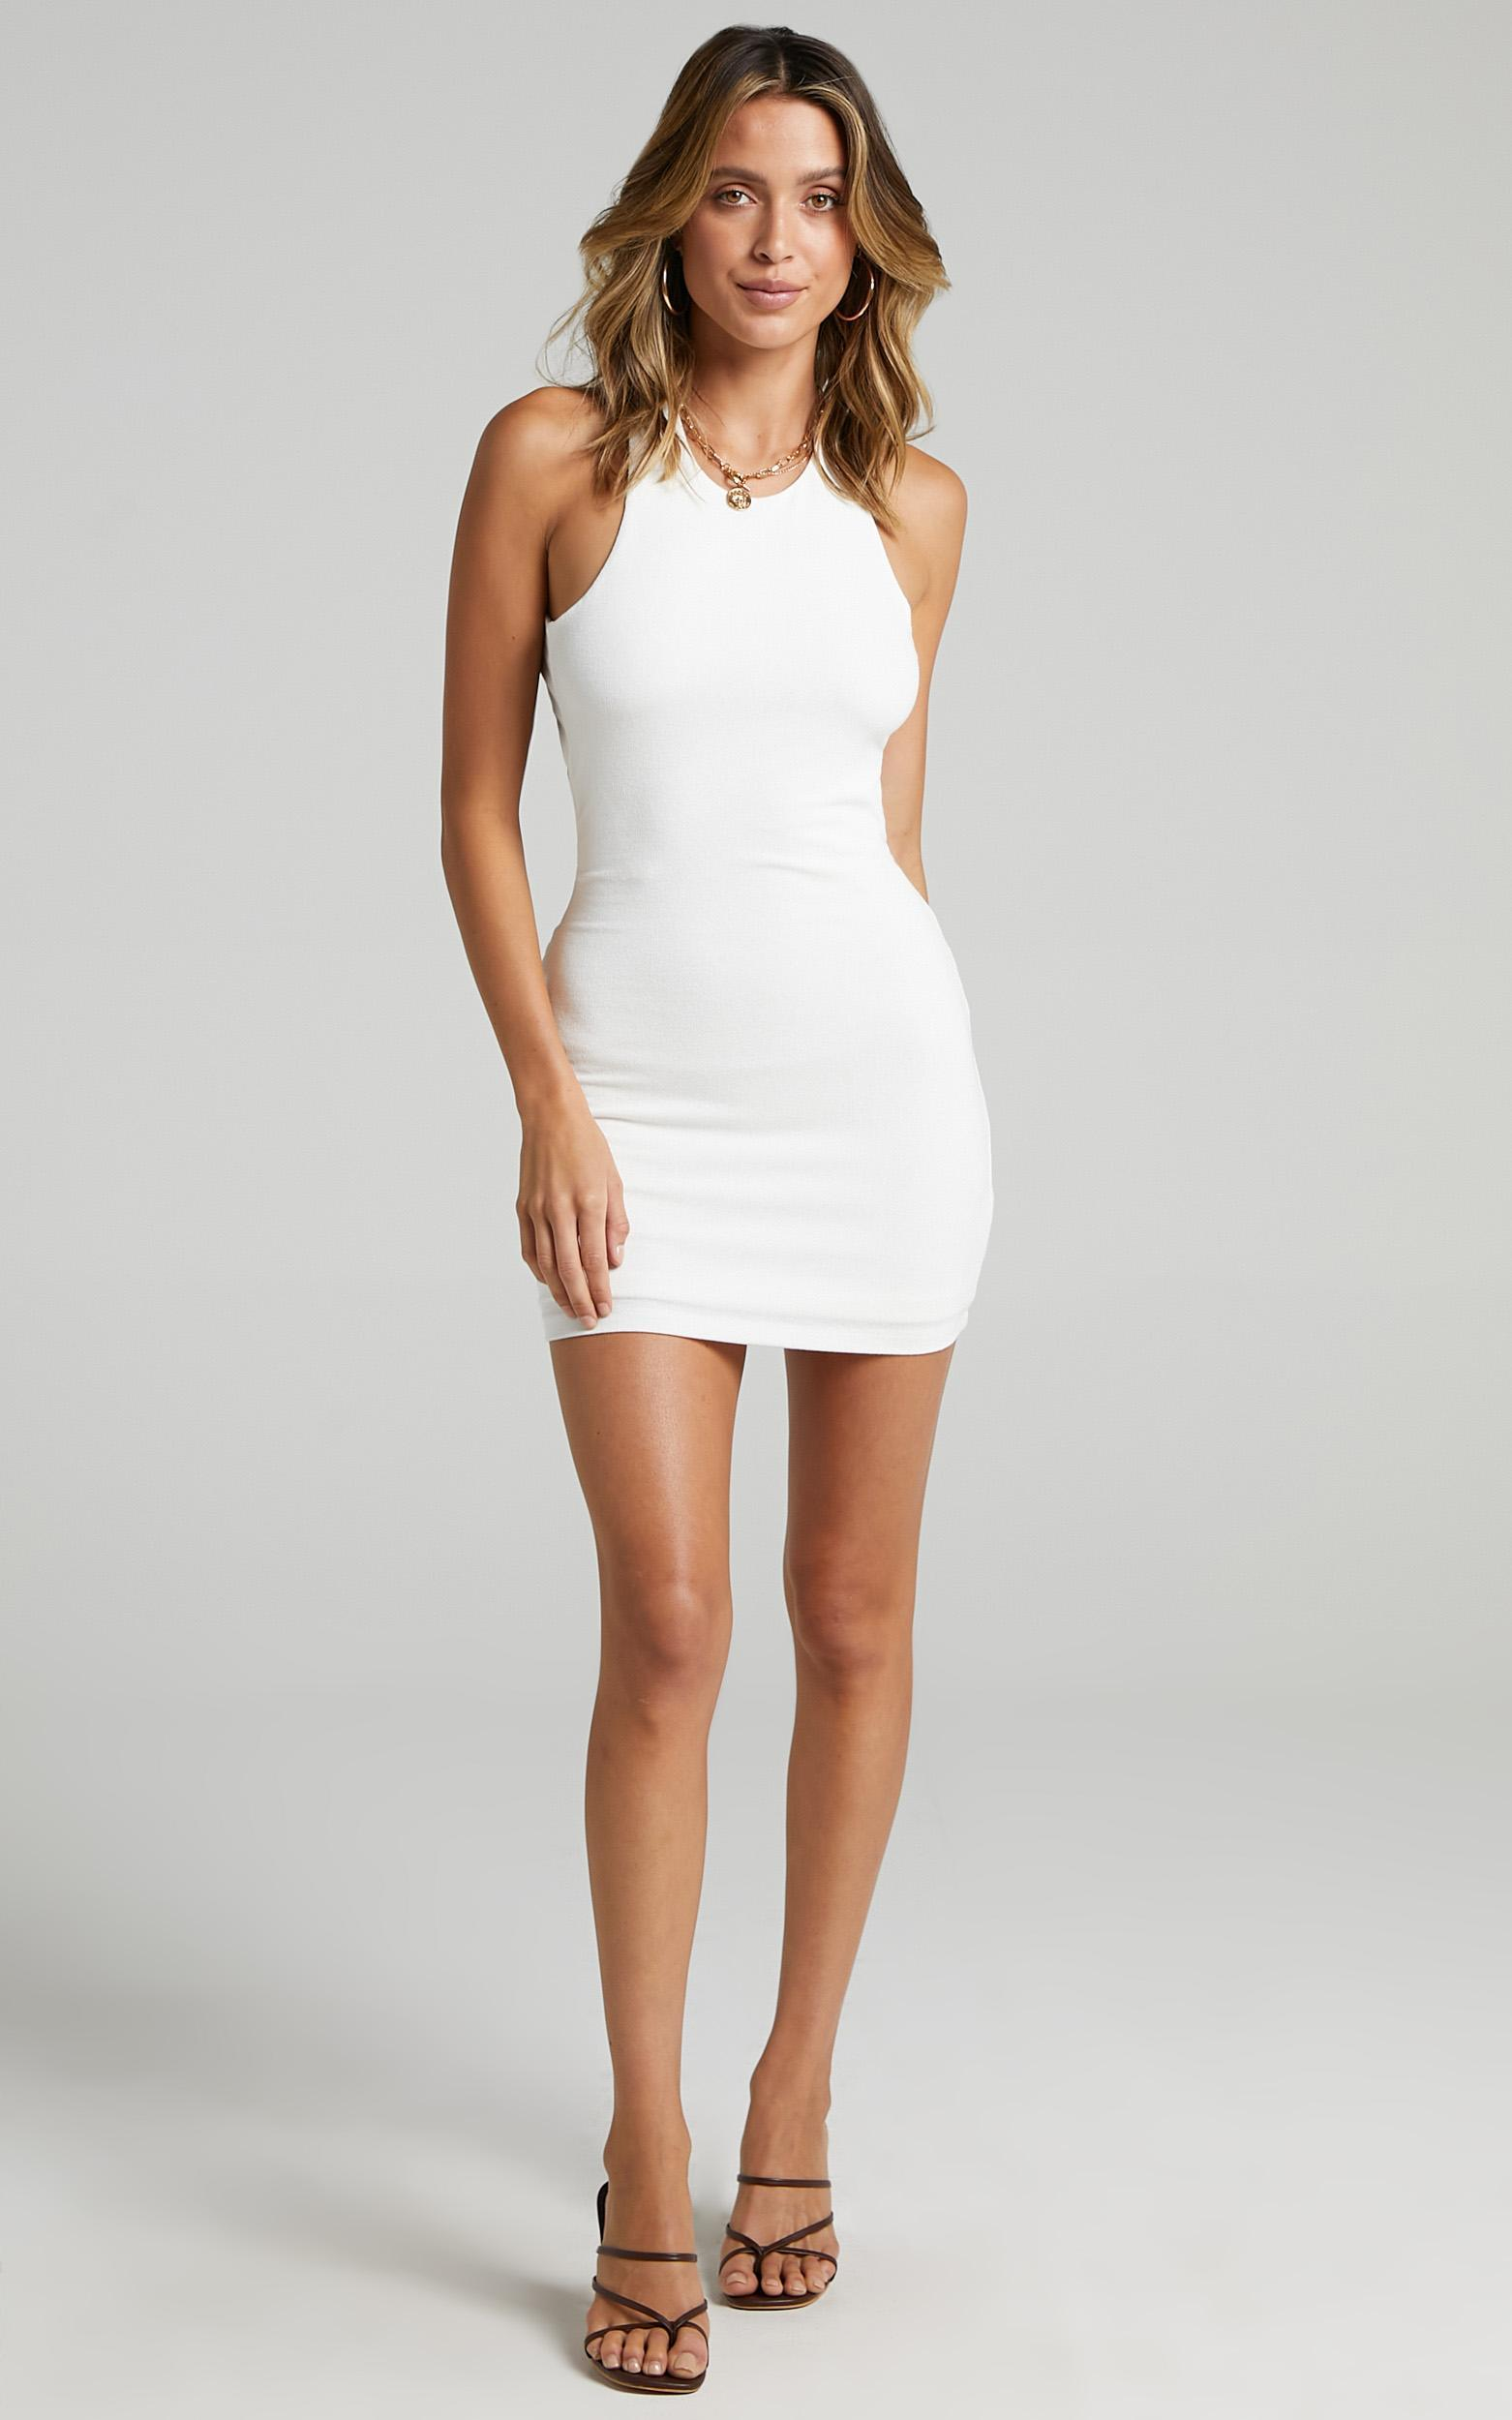 Lioness - The Clare Mini Dress in White - 6 (XS), White, hi-res image number null